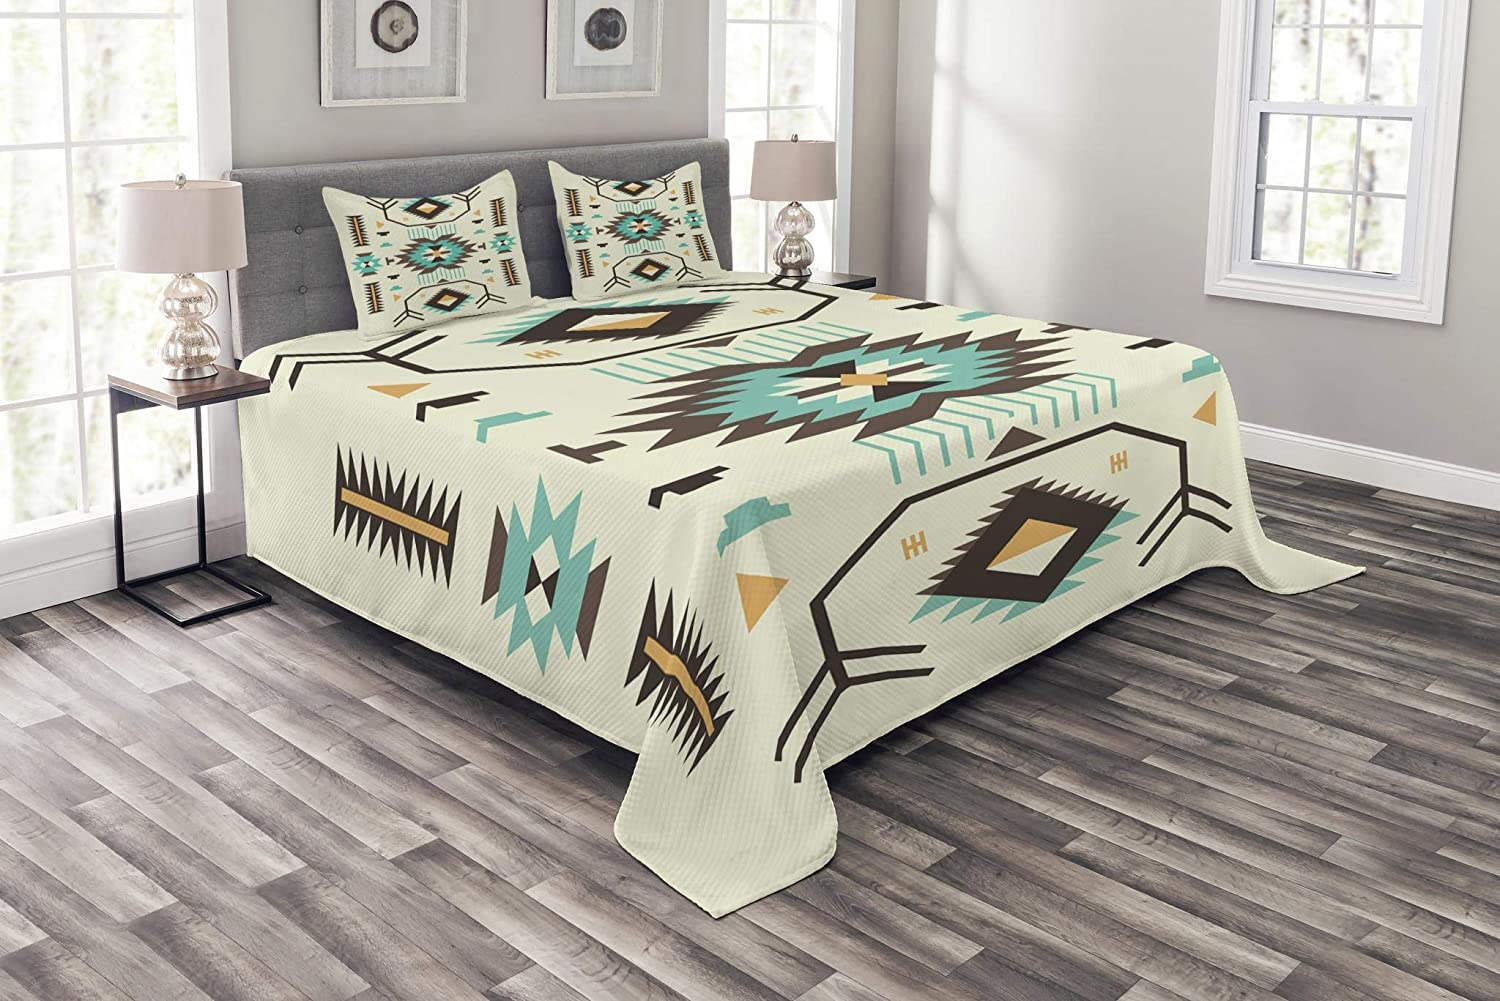 Ambesonne Southwestern Bedspread, Ethnic Illustration of a Zigzags Design Triangular Iconic Artwork Motifs, Decorative Quilted 3 Piece Coverlet Set with 2 Pillow Shams, Queen Size, Pale Yellow